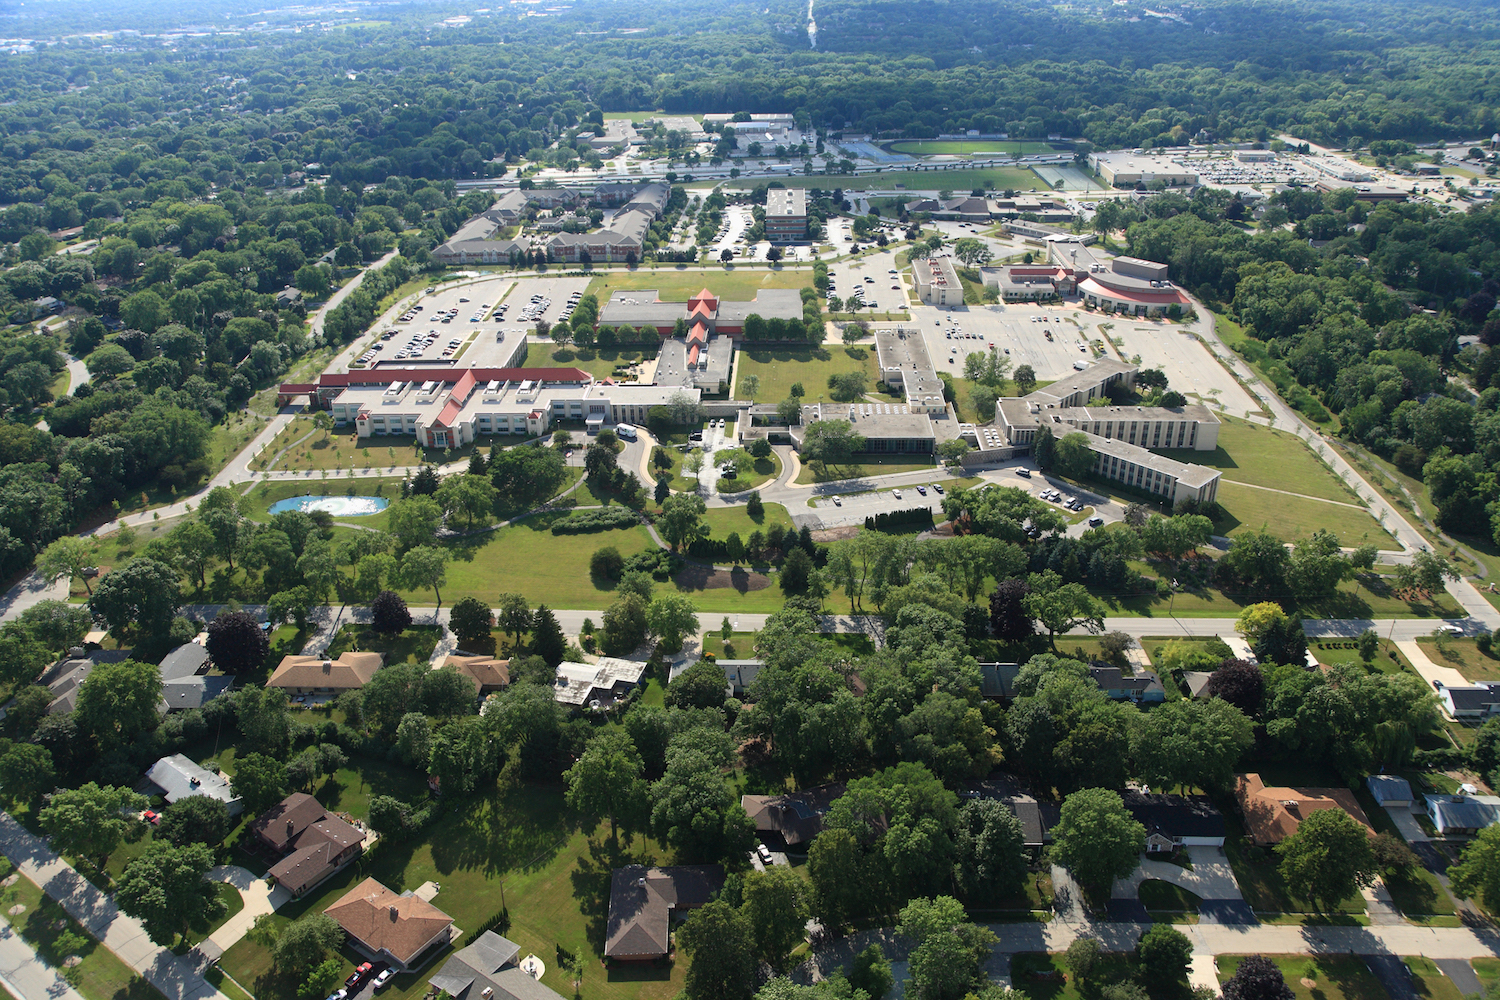 Cardinal Stritch University experienced significant growth and expansion toward the end of the 20th century. This modern aerial photograph provides a view of campus from the east.